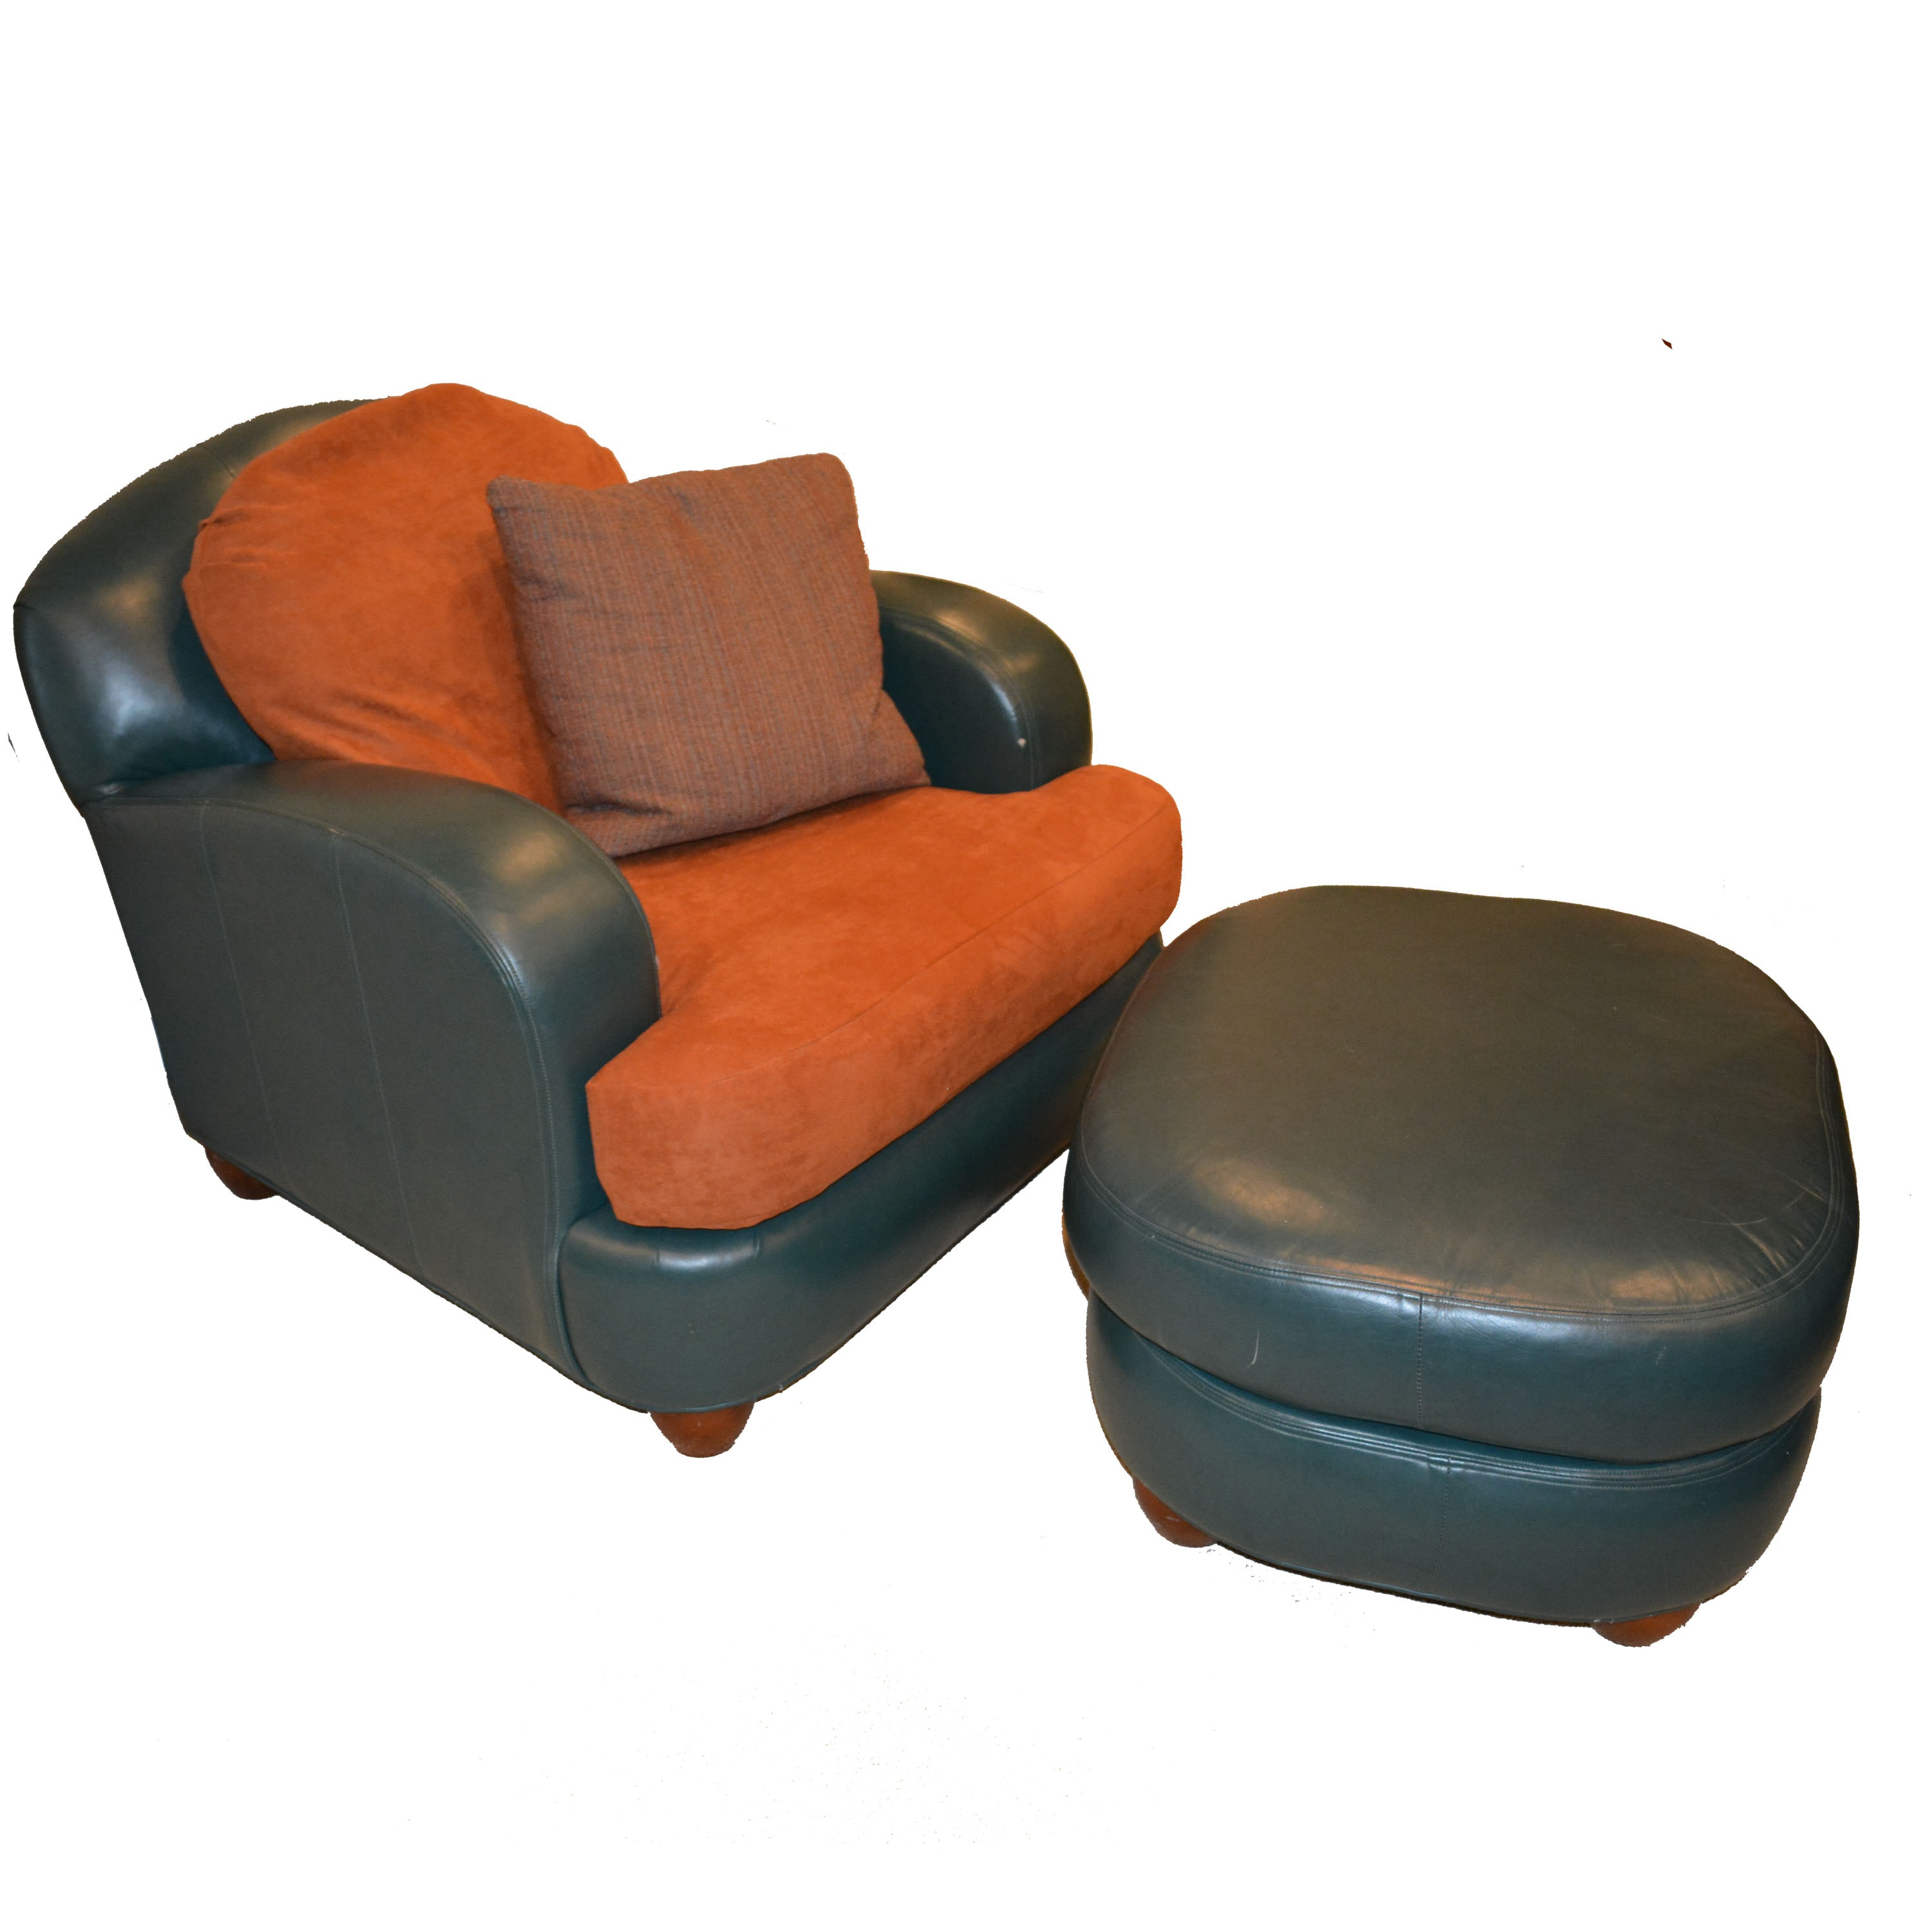 Teal Leather Club Chair and Ottoman by Ethan Allen